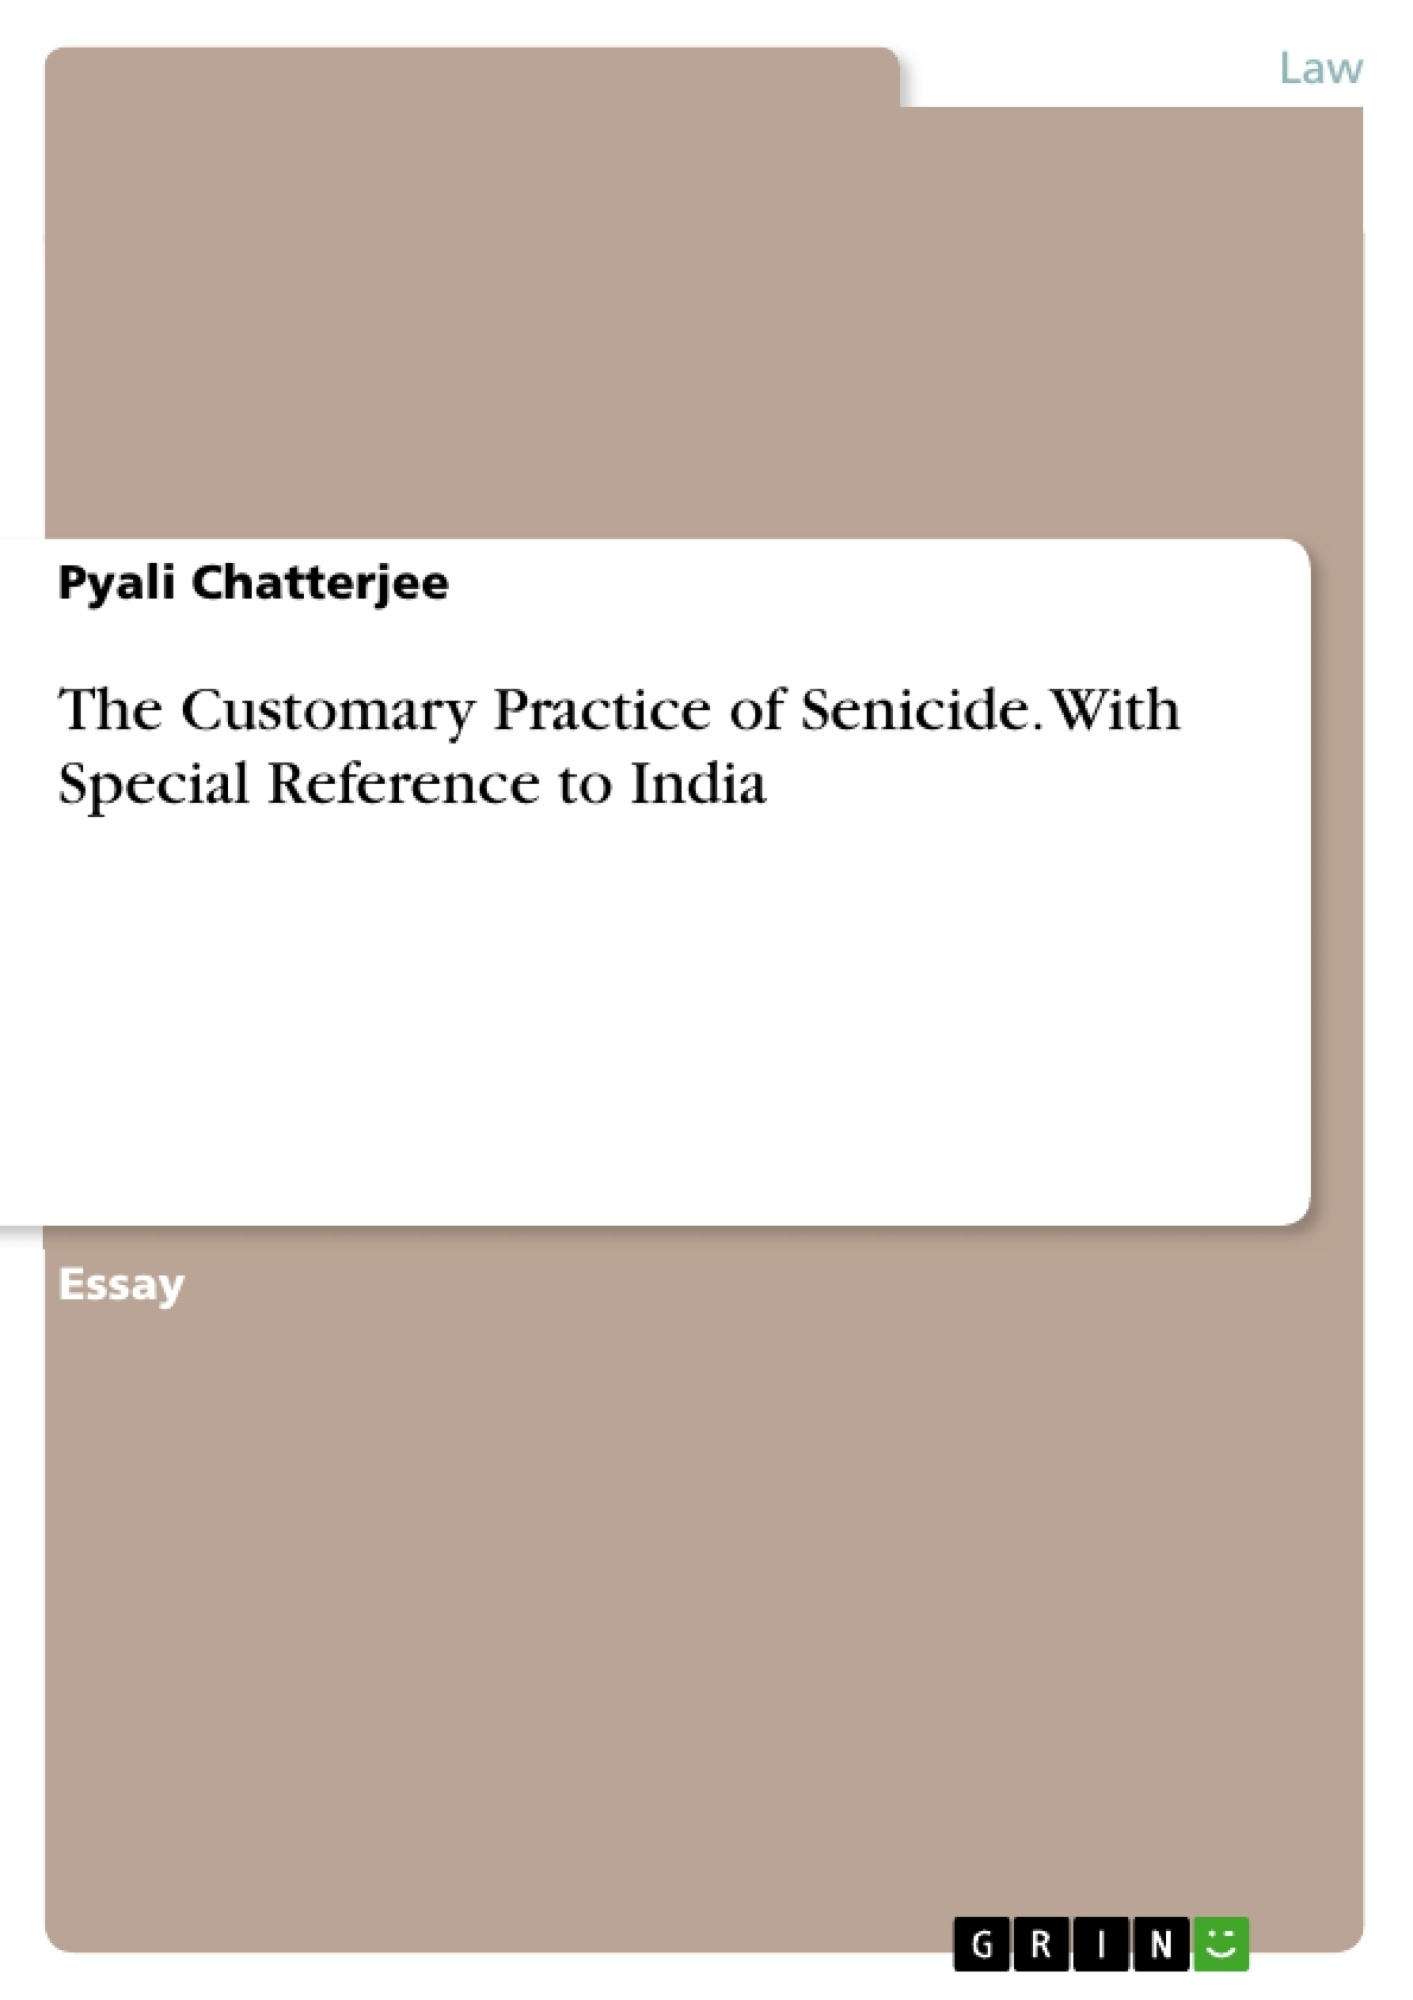 GRIN - The Customary Practice of Senicide  With Special Reference to India